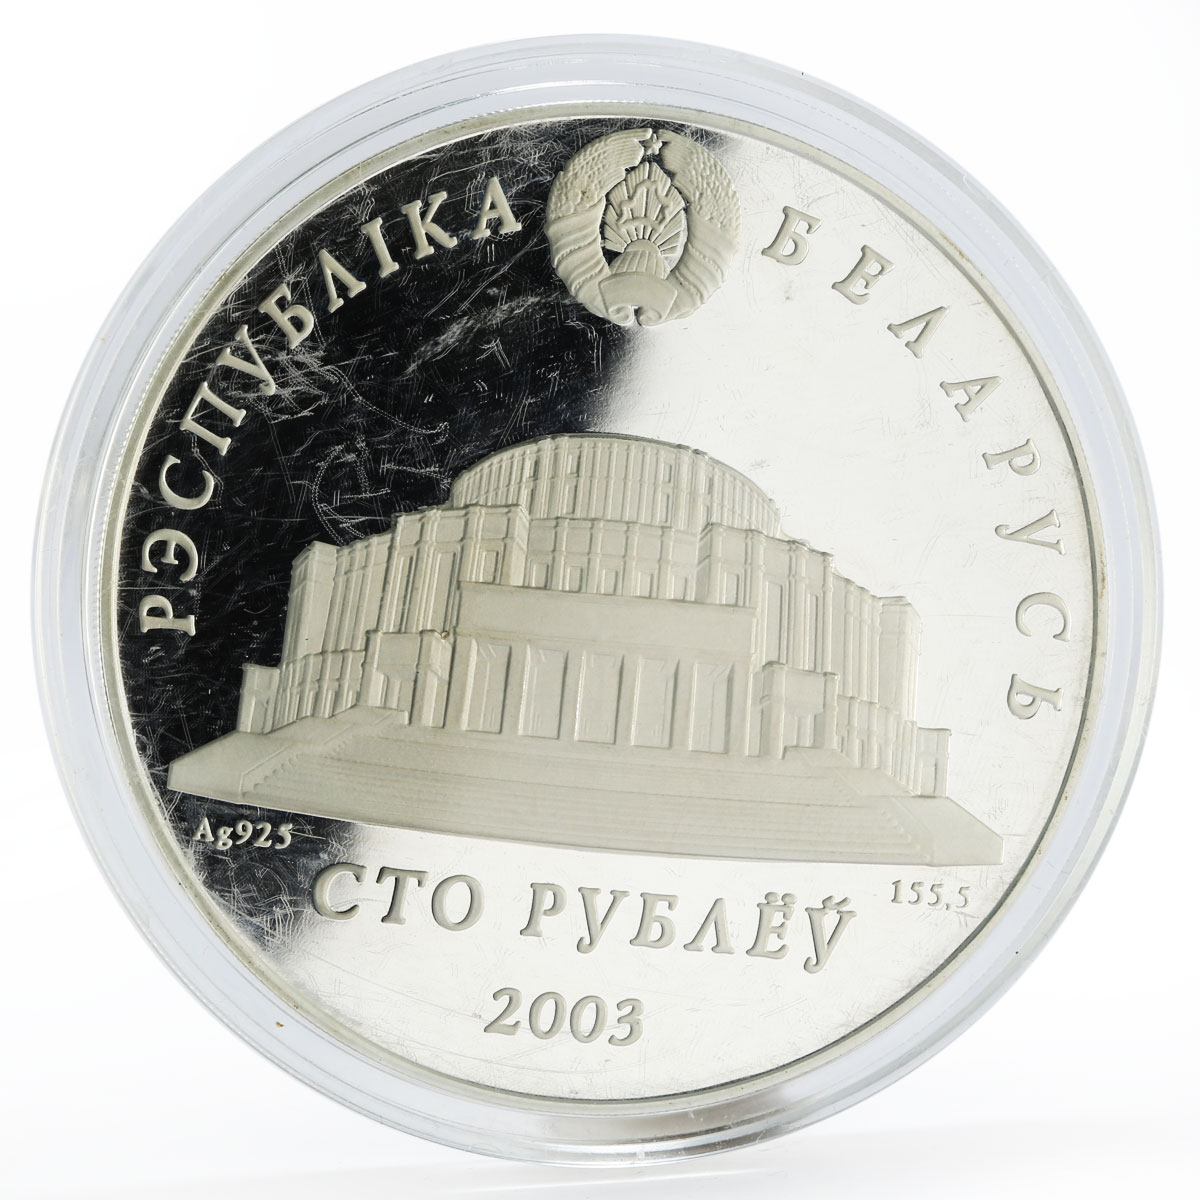 Belarus 100 rubles Theater Belarusian Ballet silver proof coin 2003